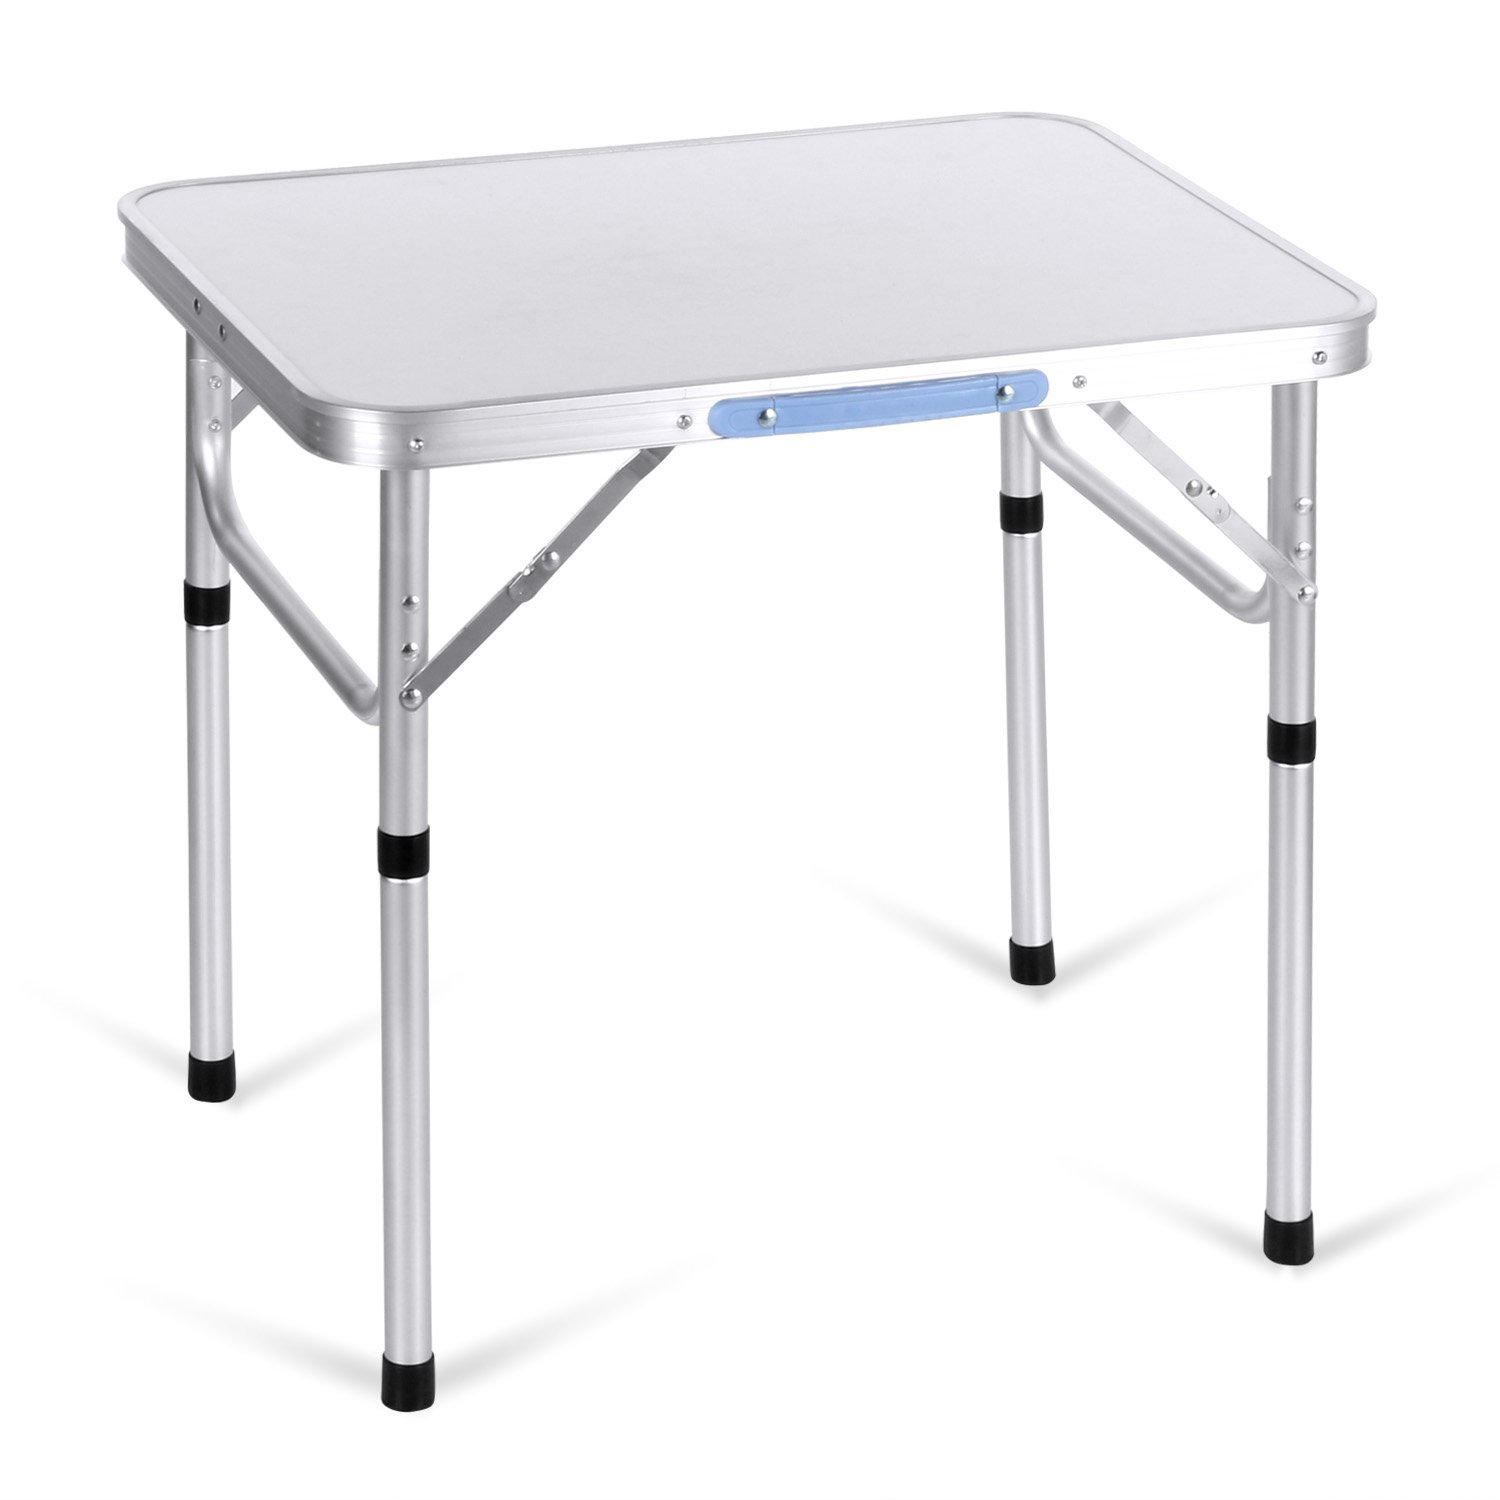 Moroly Aluminum Portable Folding Camping Table with Carrying Handle for Camping/Picnic/Working/Garden/Hiking/Beach/BBQ/Party(US Stock) (2 FT-2)